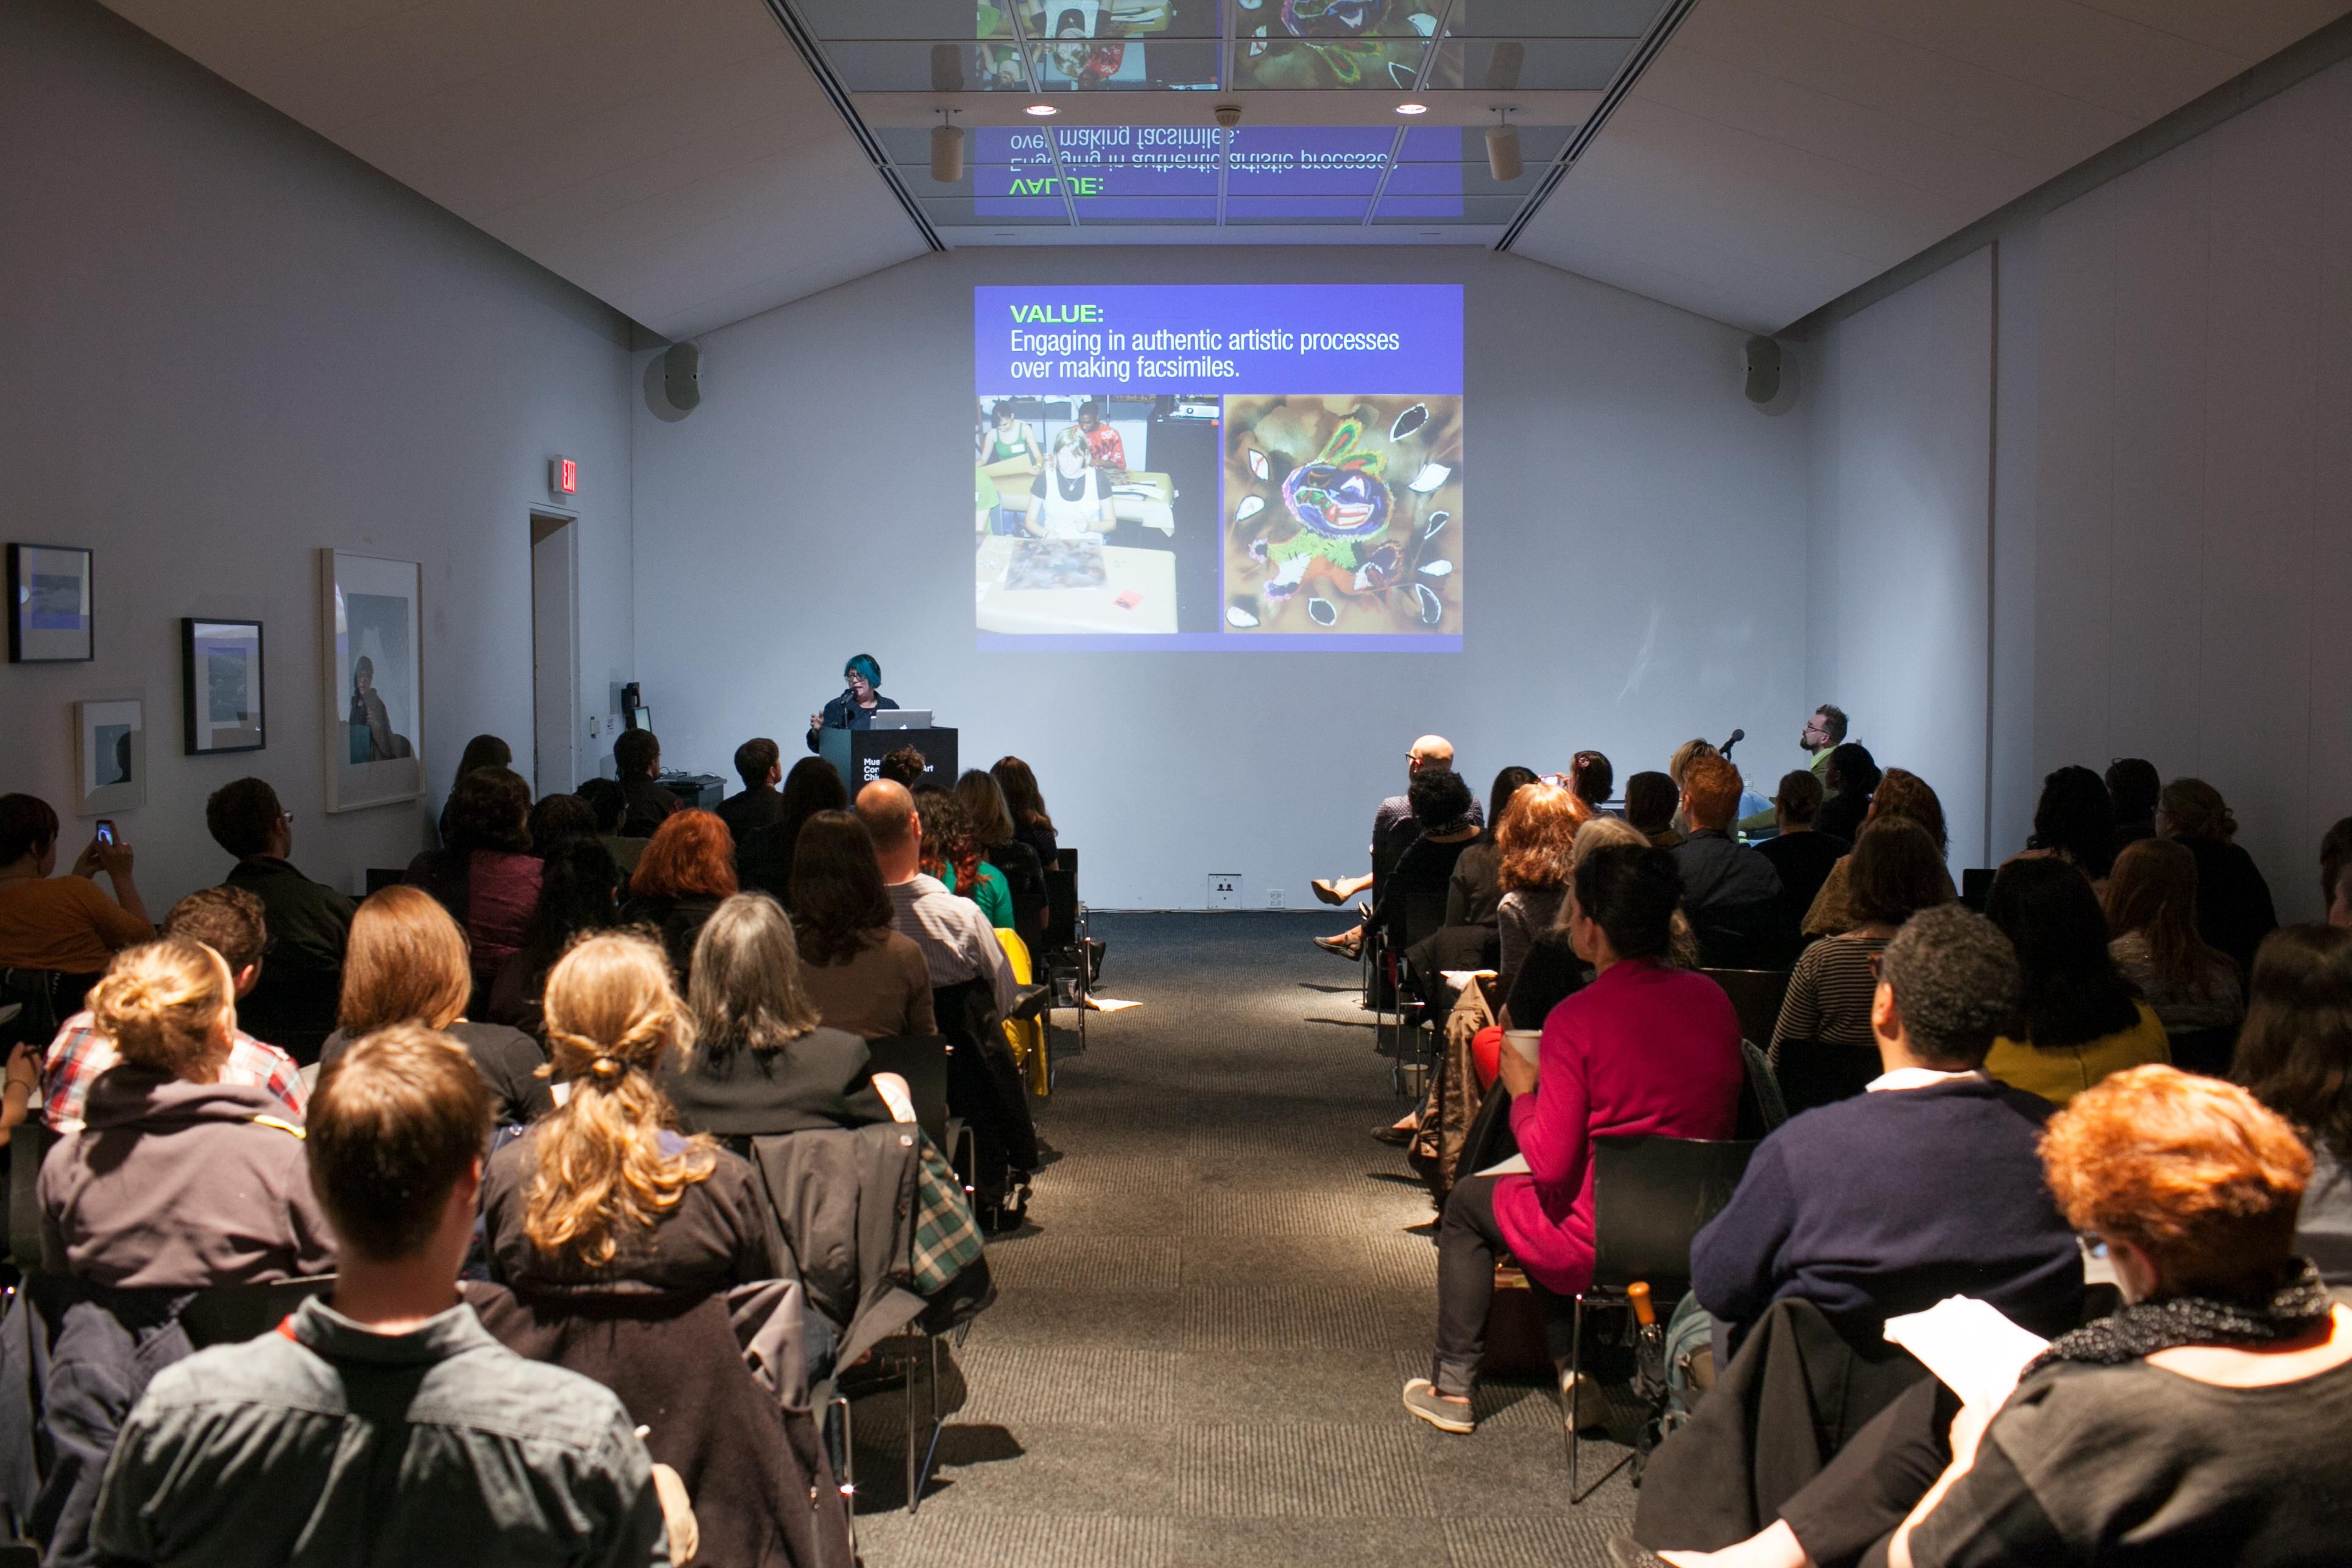 A room is full of people sitting in rows of chairs, taking notes, and looking up at a projection of a presentation, while someone speaks at the front podium.